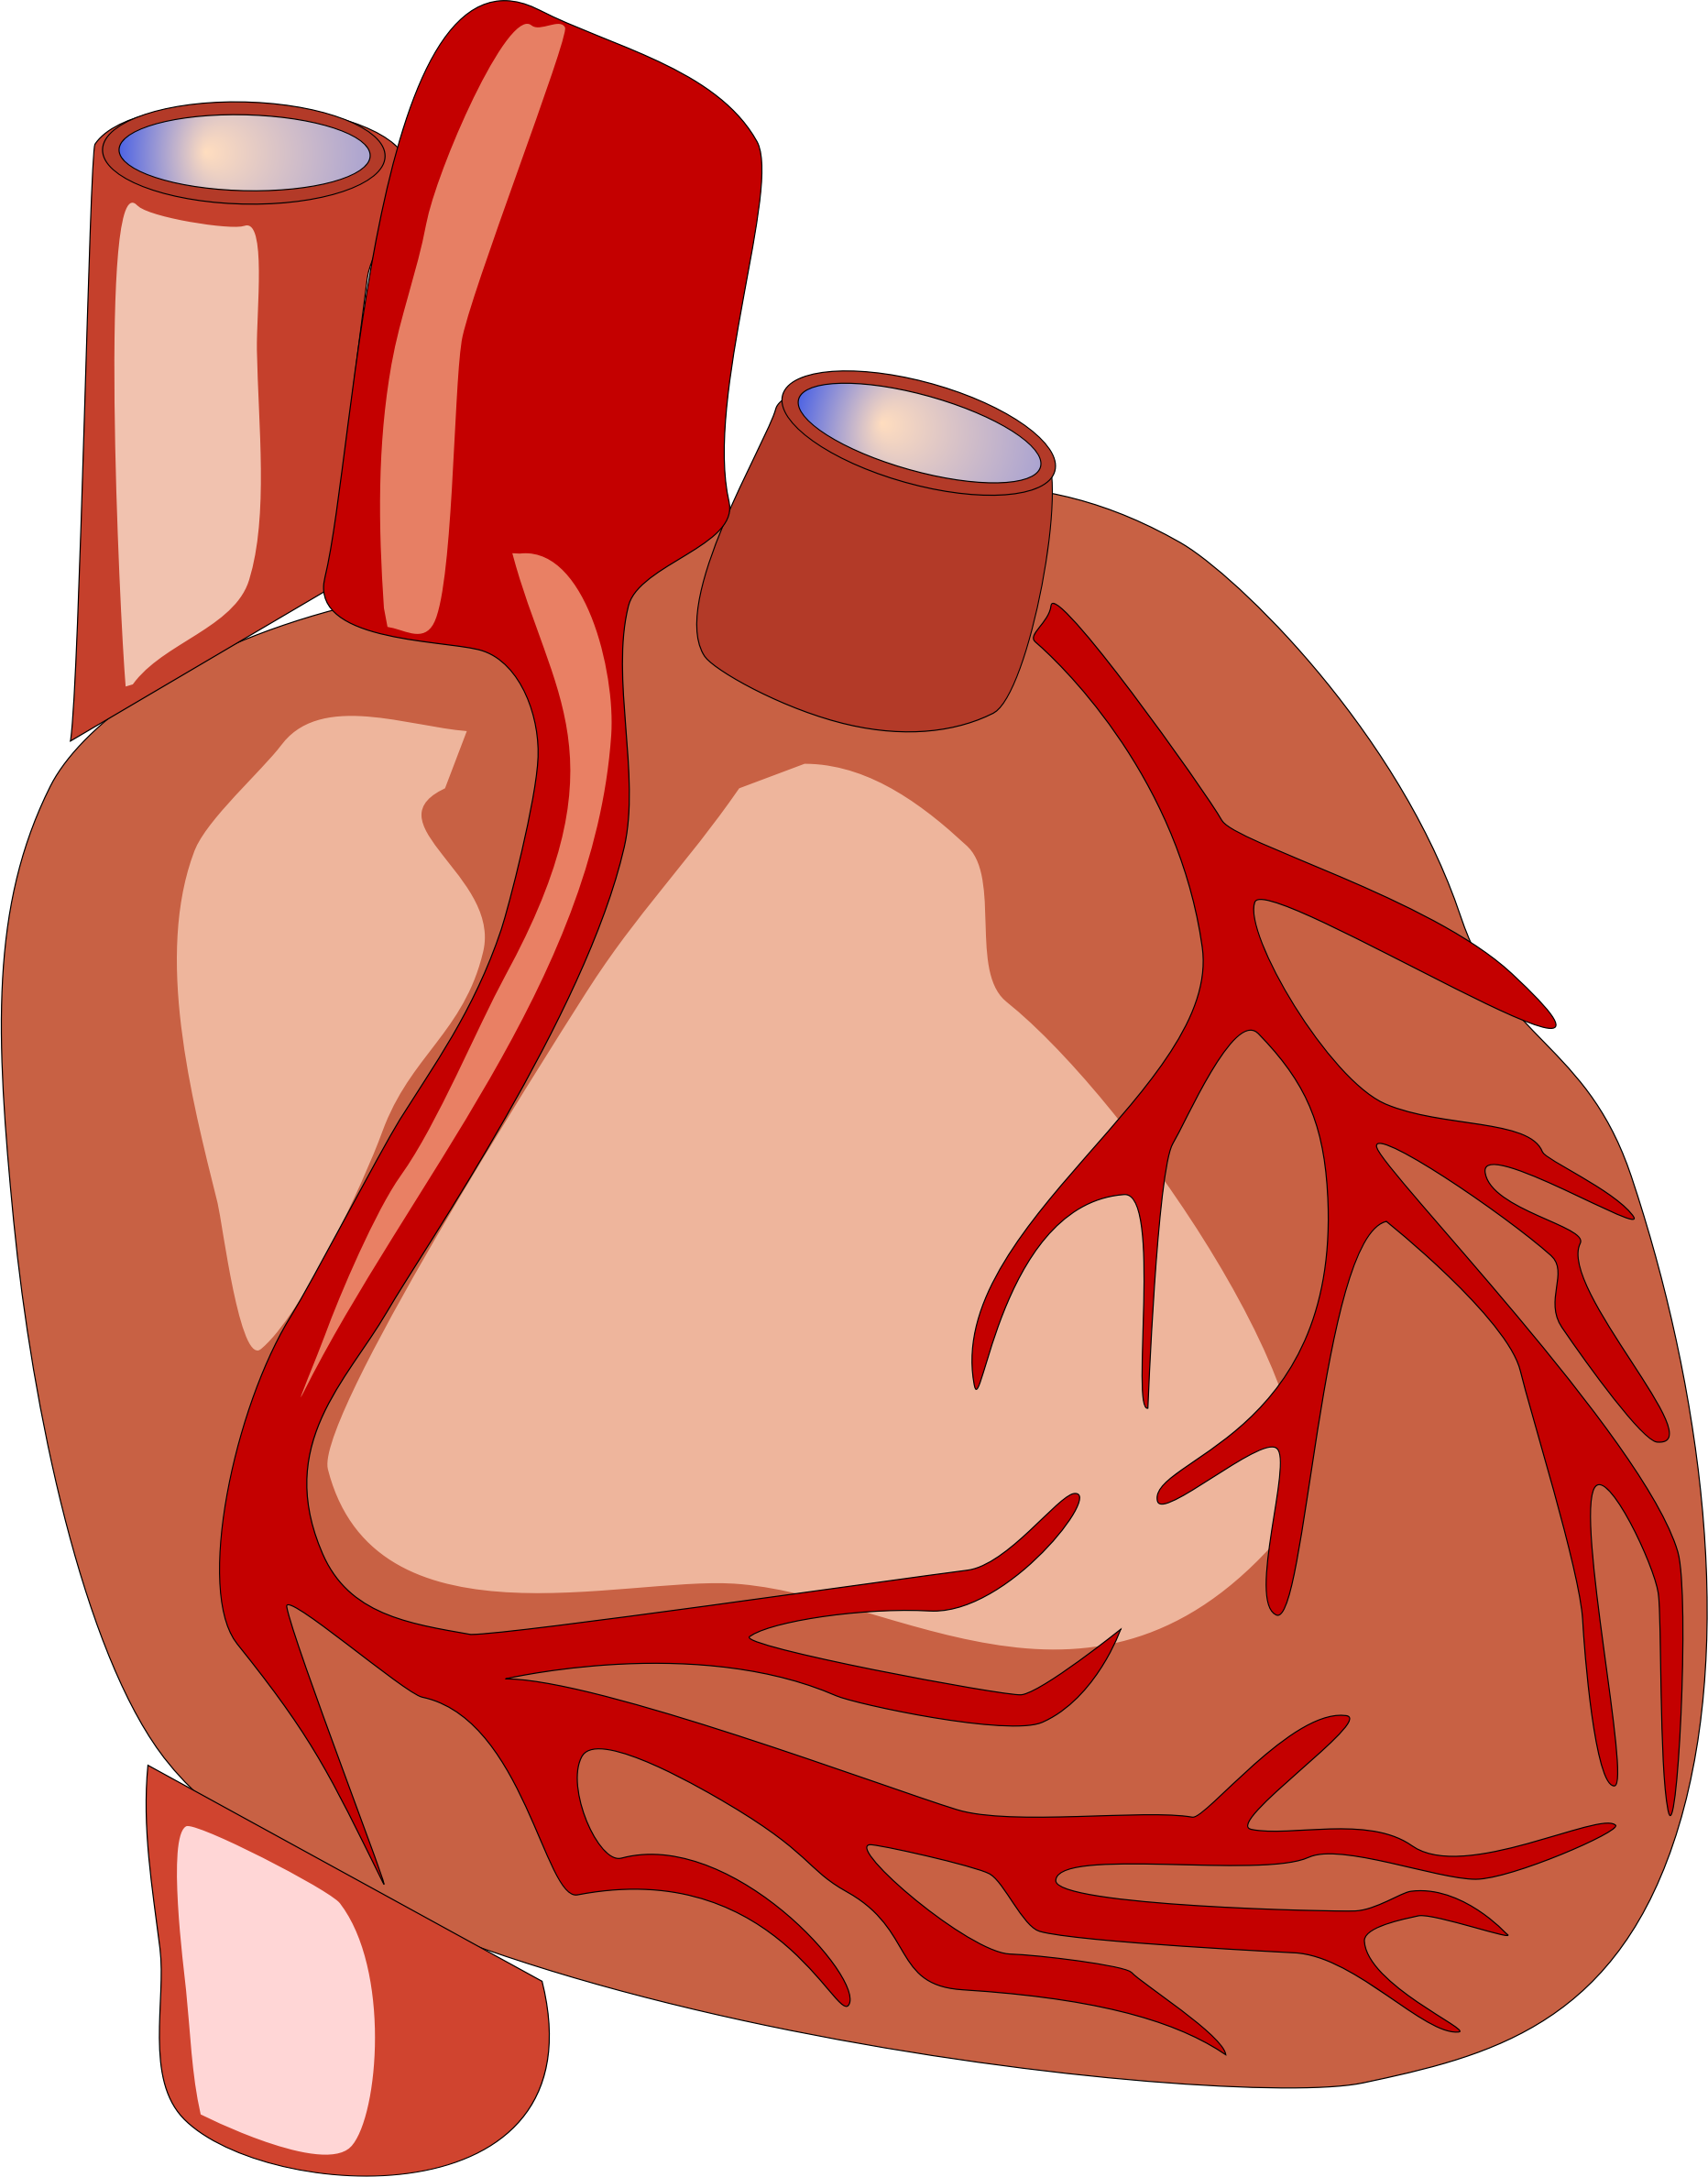 Clipart human heart graphic black and white download Clipart - Human heart graphic black and white download